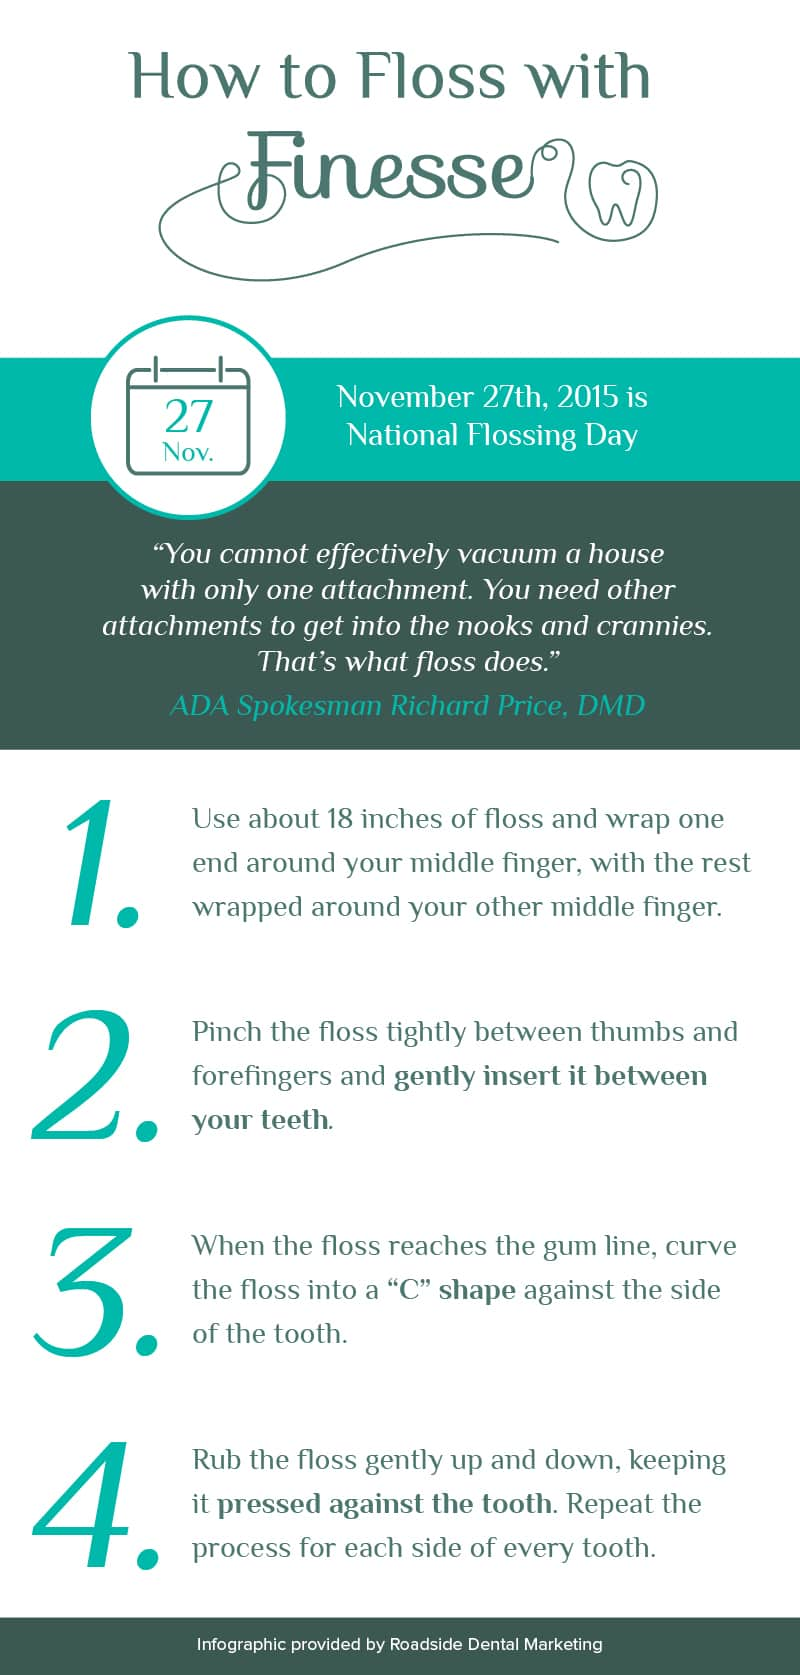 15114 Blog Infographic - How to Floss